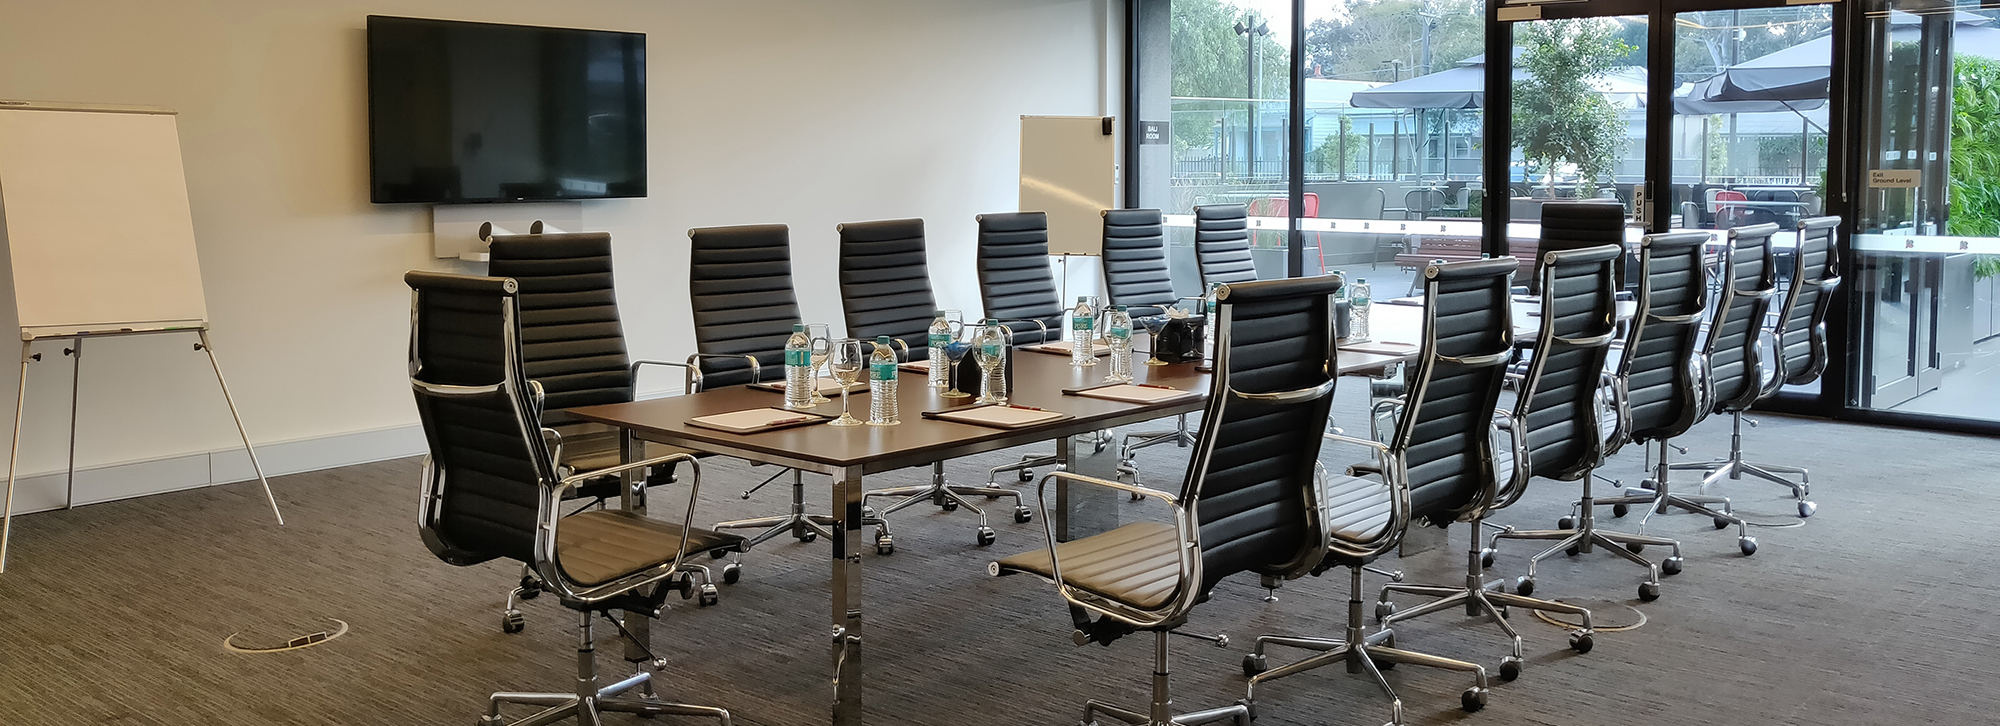 7.5m X 9.4m conference room equipped for dual screen video conferencing